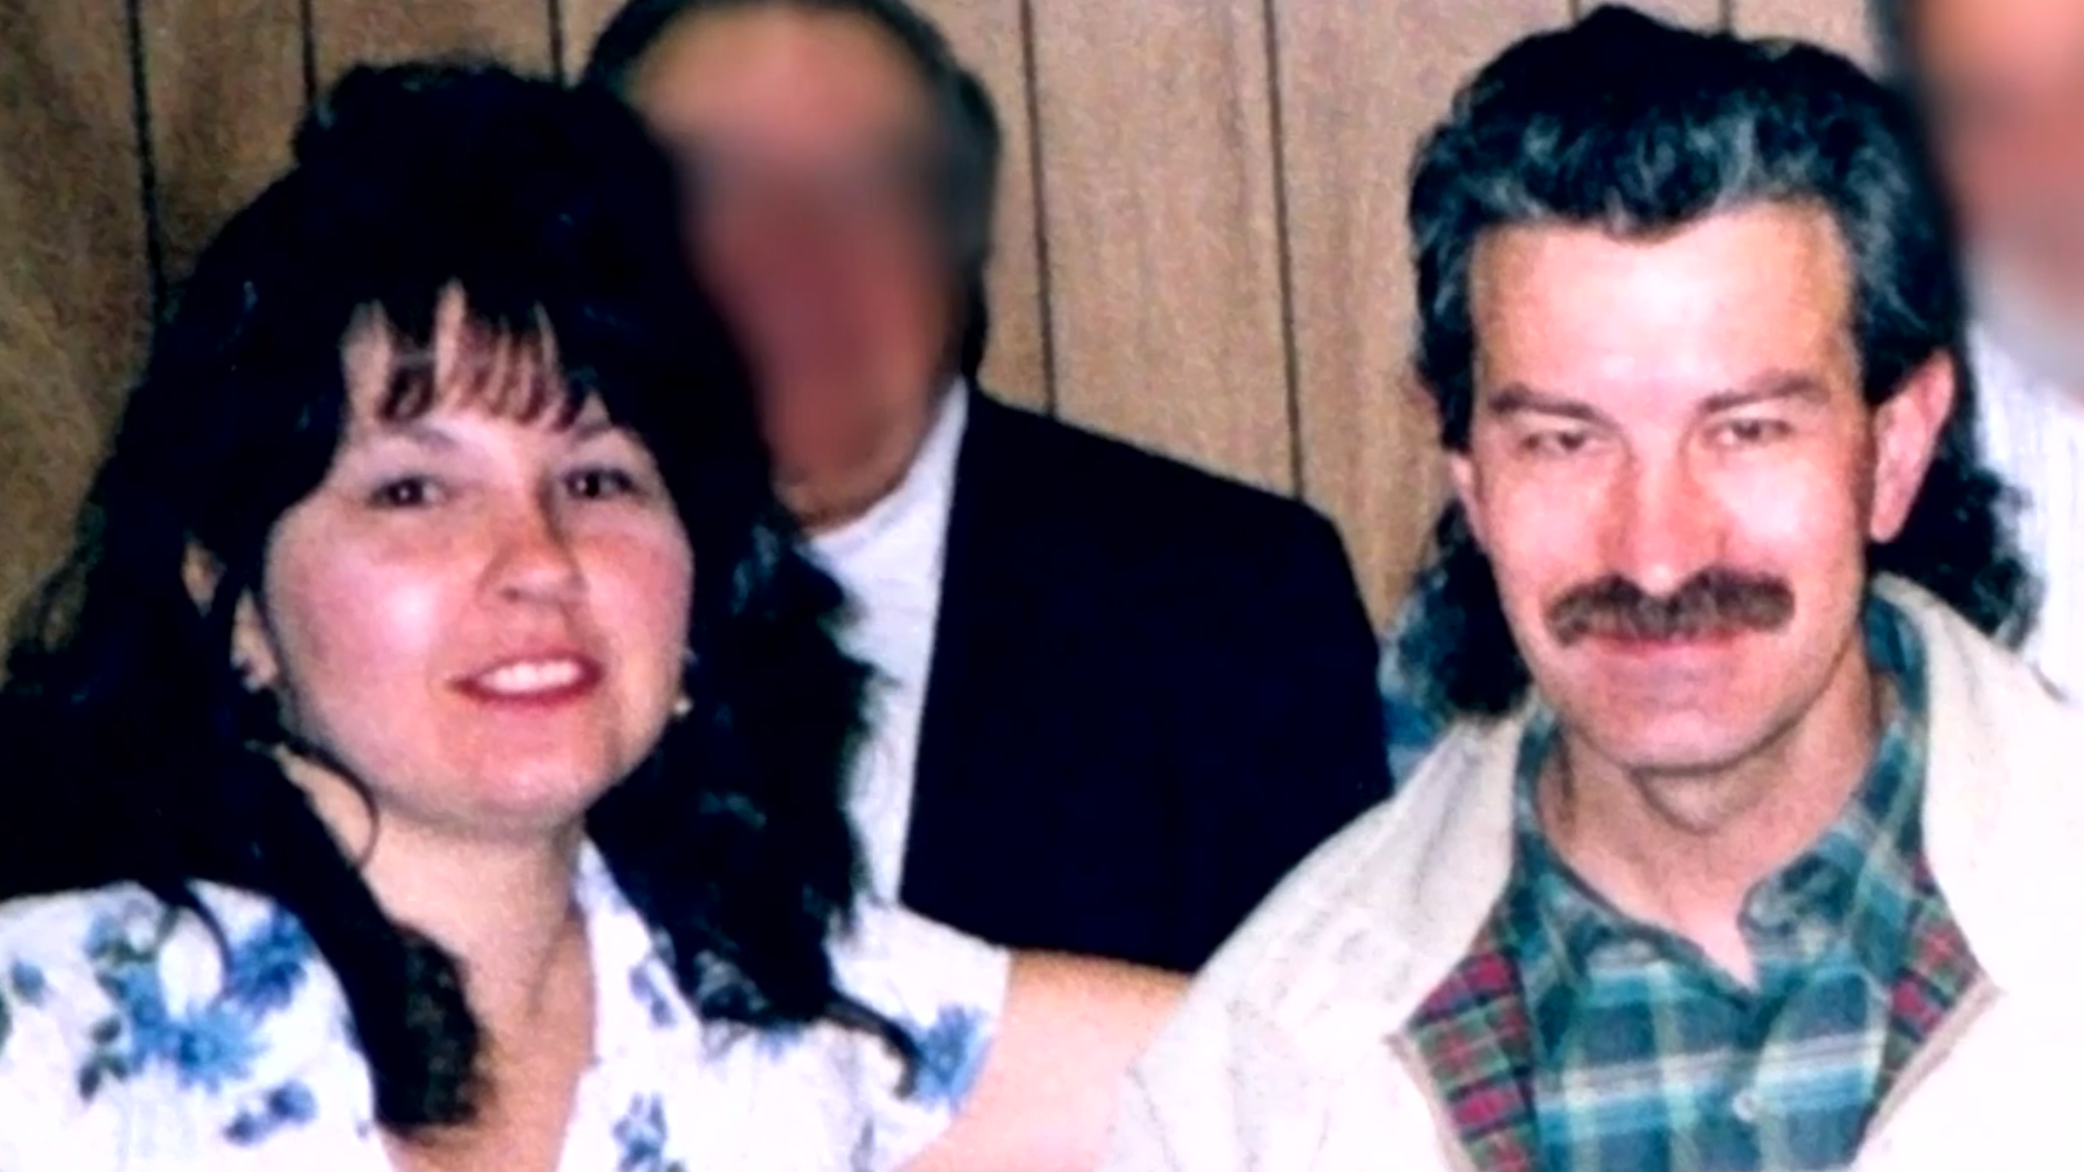 Charlie Miller Murders Friend Larry Holman To Be With Wife